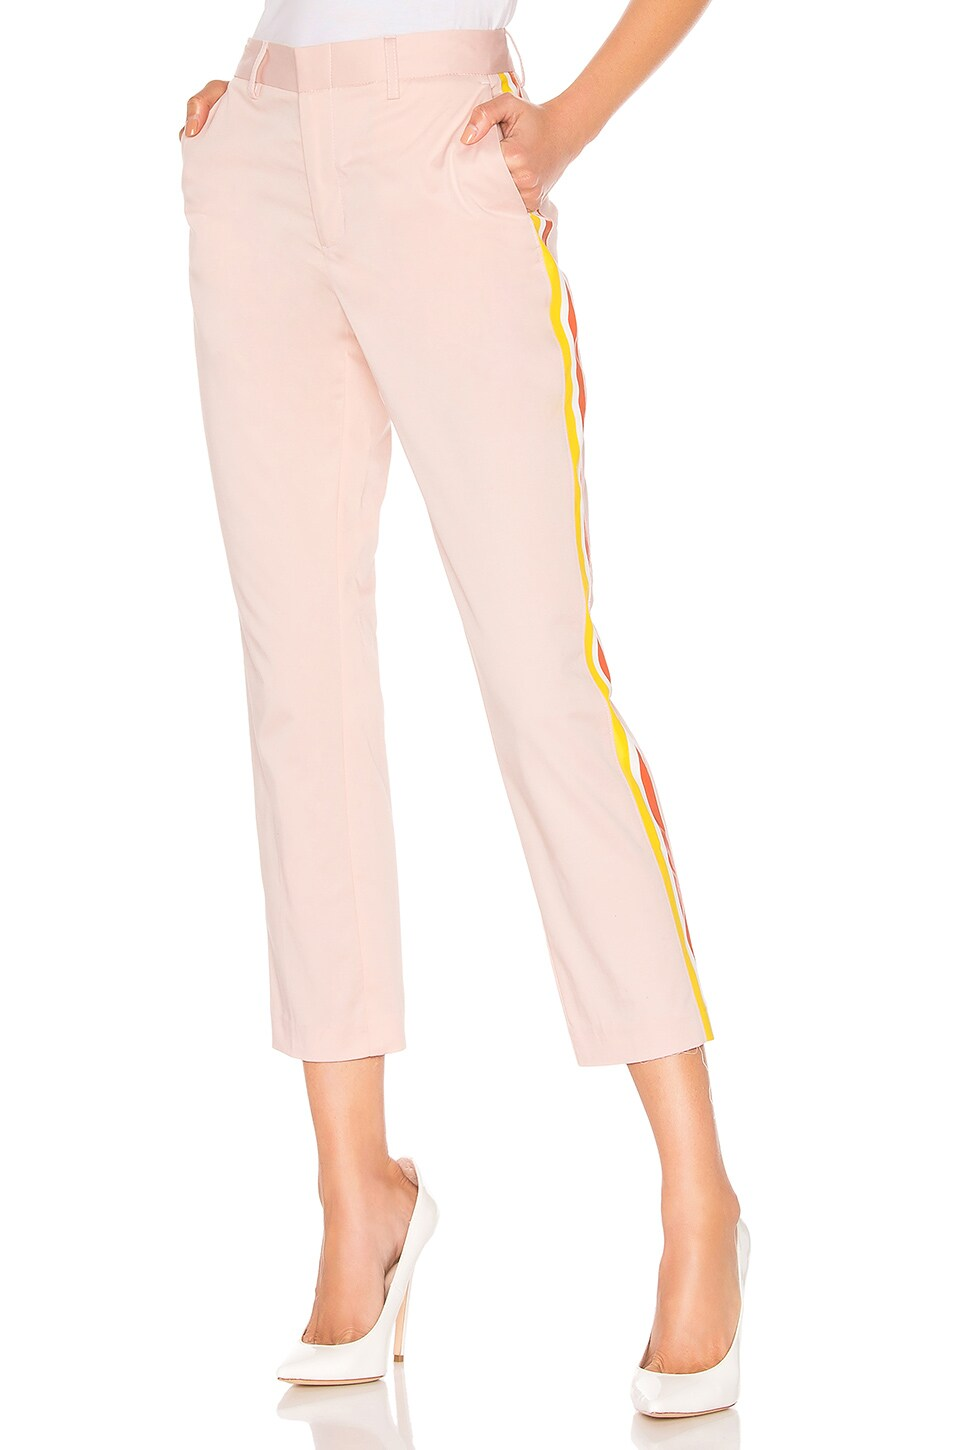 Le Superbe Saint Honore Pant in Blush